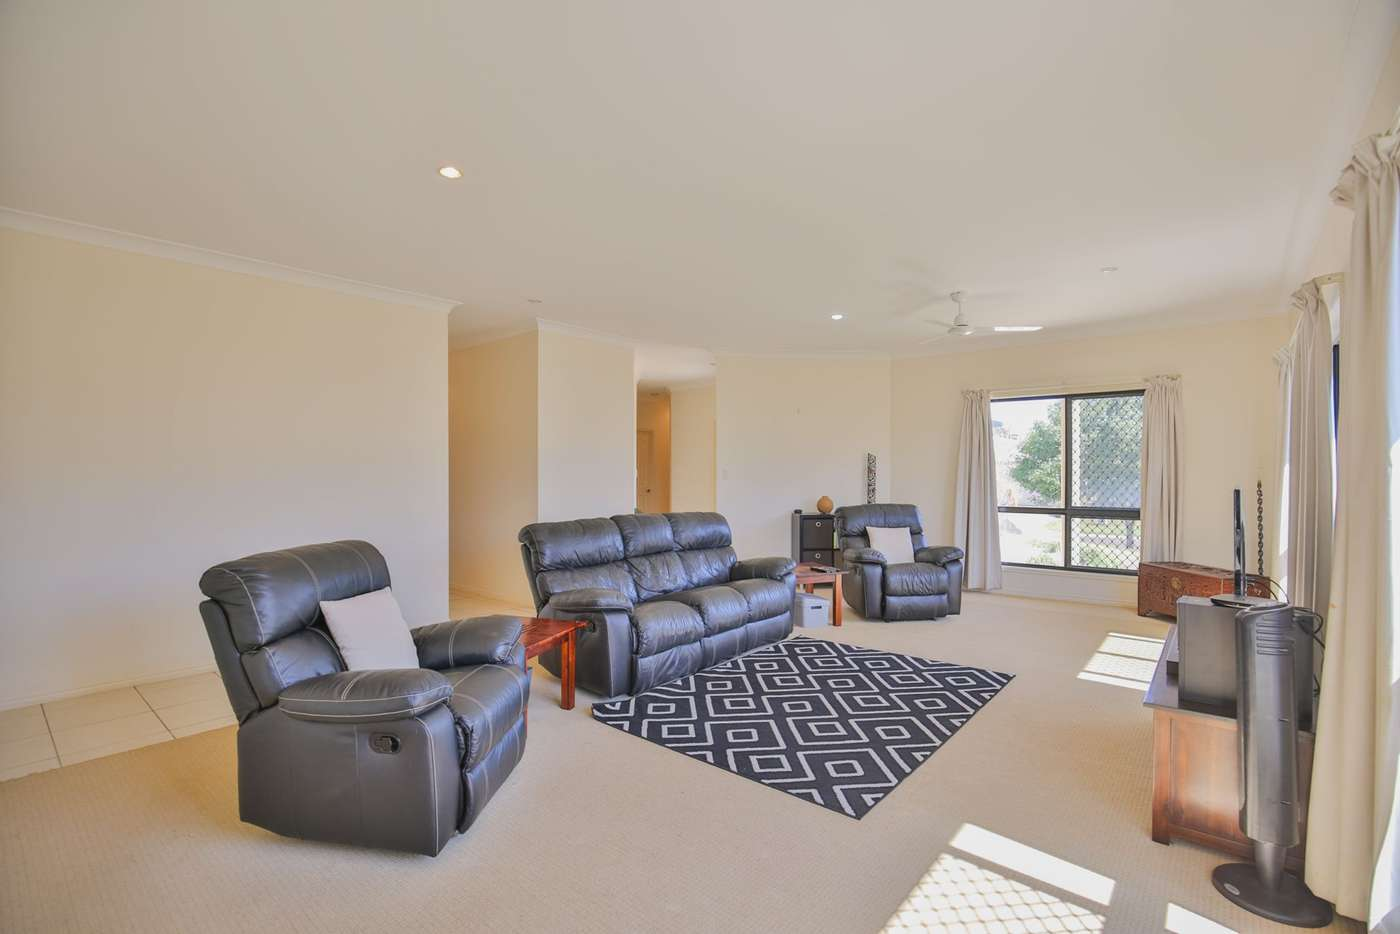 Sixth view of Homely house listing, 18 McCallum Close, Coral Cove QLD 4670